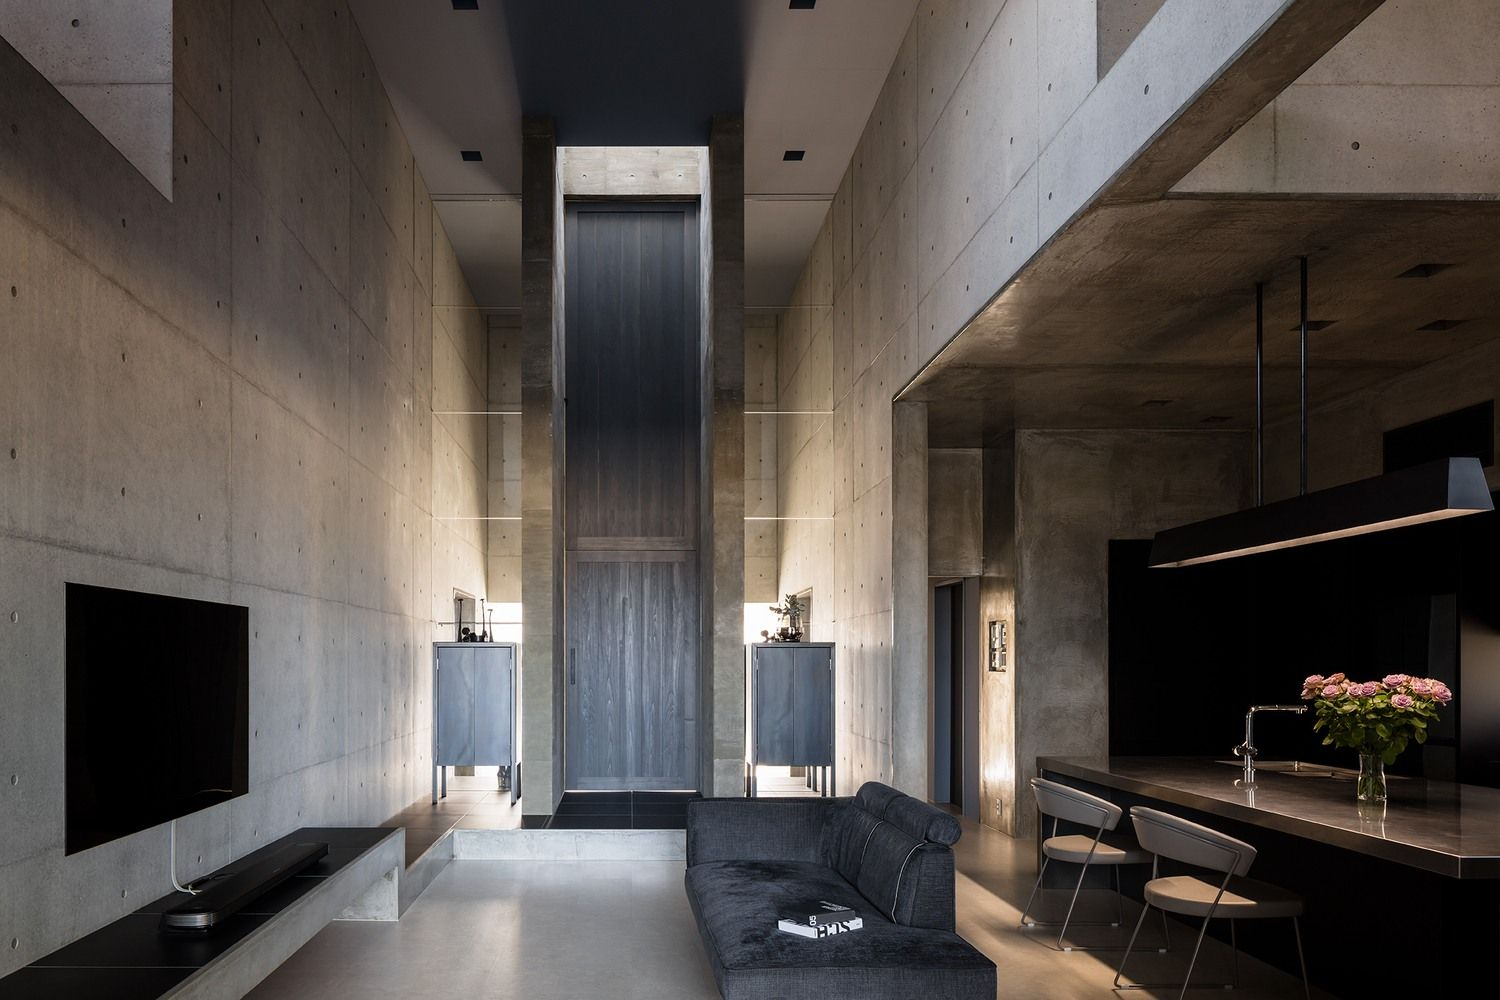 A Concrete Concept Home On A Highway In Shiga Japan Ignant Concrete House Architect Concept Home